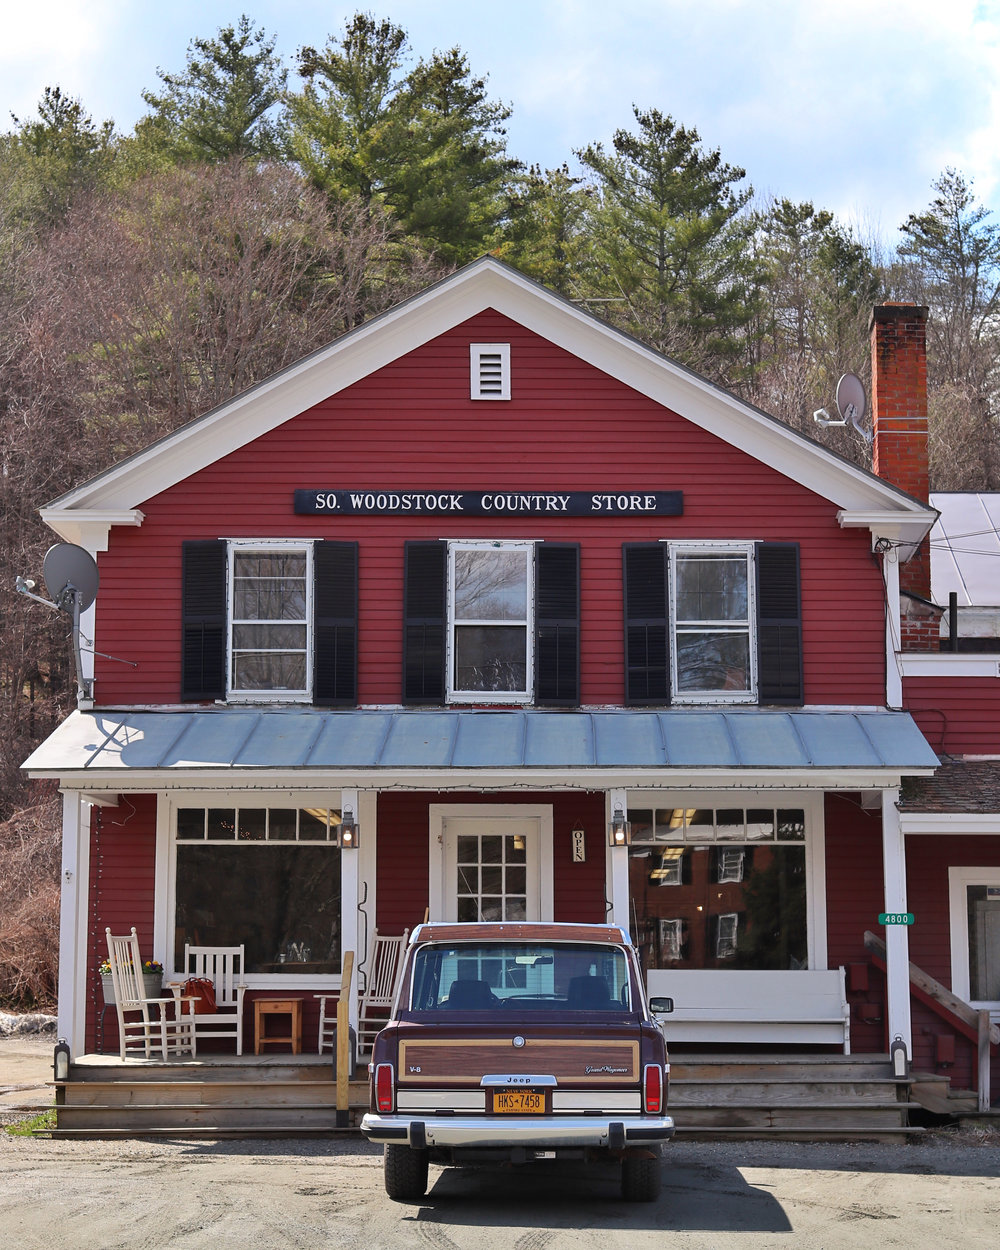 South Woodstock Country Store